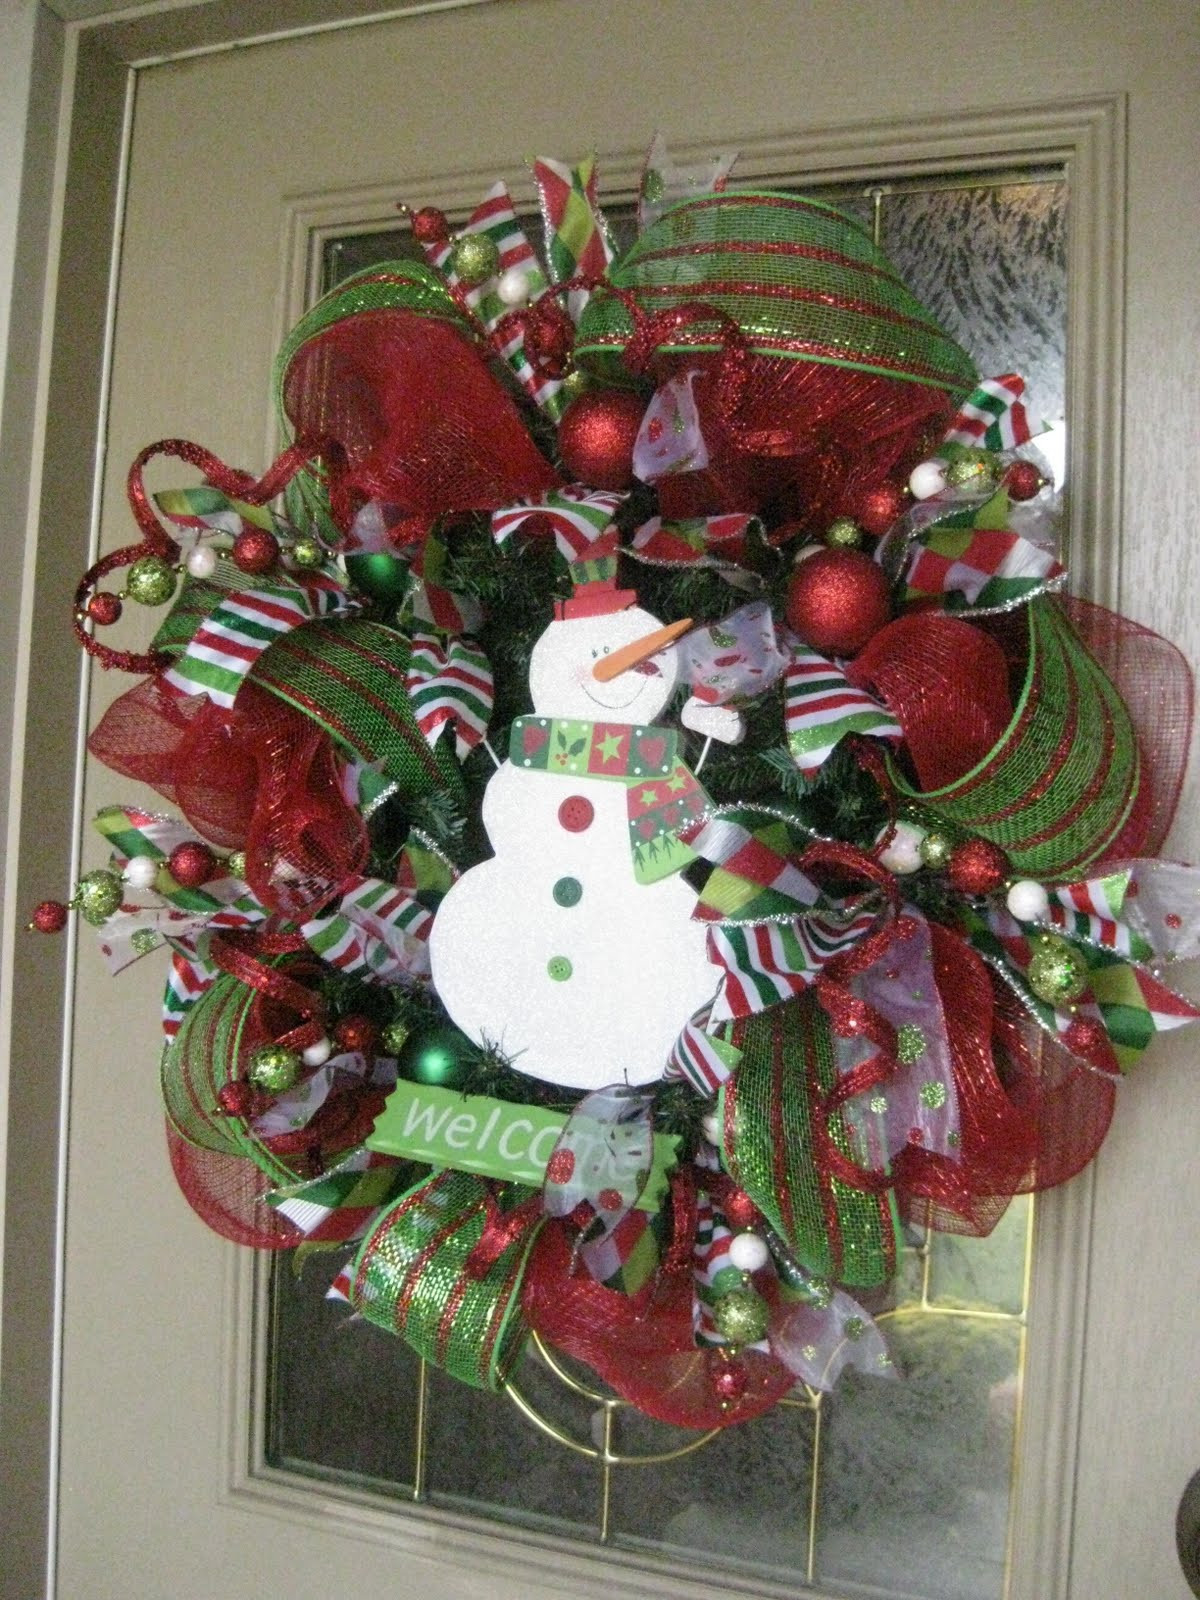 Best ideas about Mesh Wreaths DIY . Save or Pin Kristen s Creations Christmas Mesh Wreath Tutorial Now.